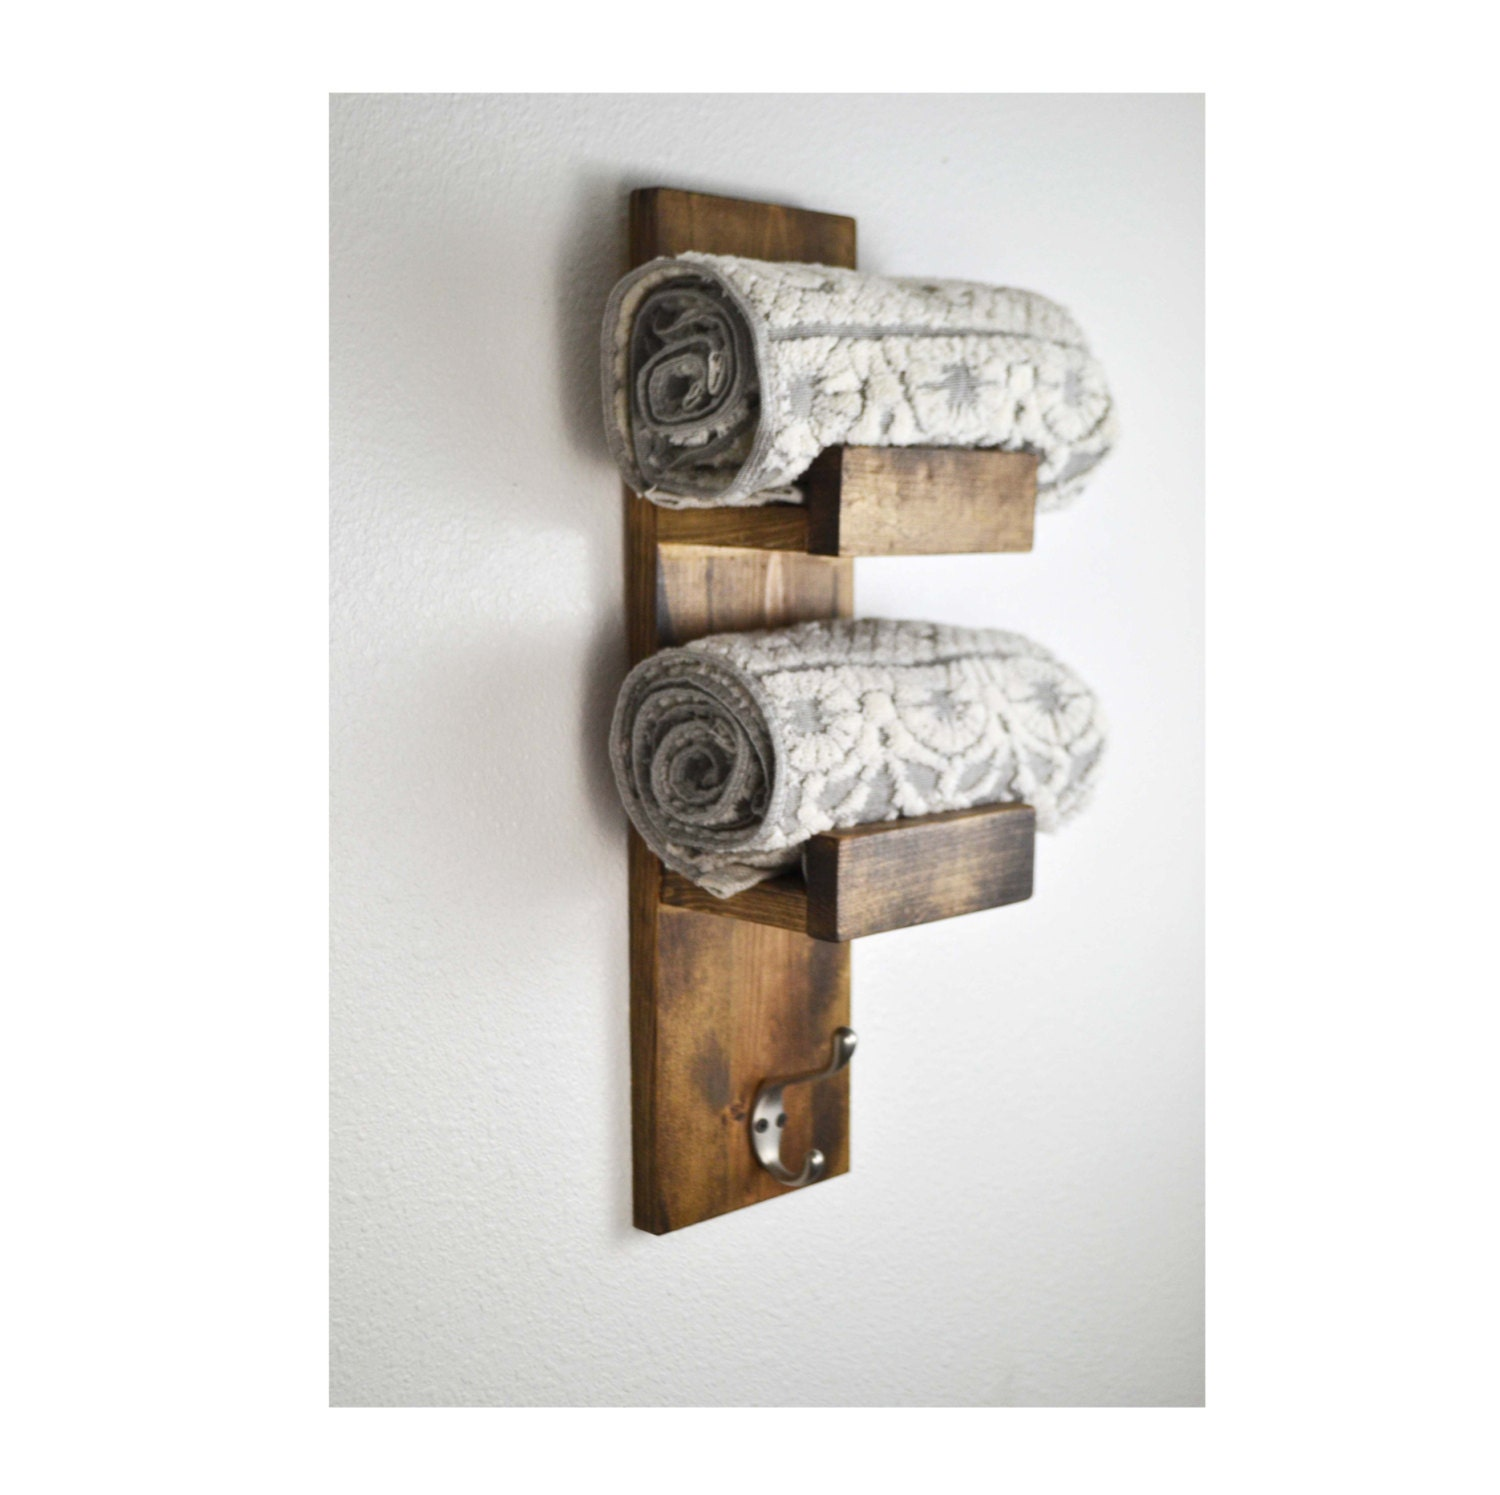 Kitchen Towel Hooks For Towels: Rustic Towel Rack Kitchen Rustic Kitchen Home By